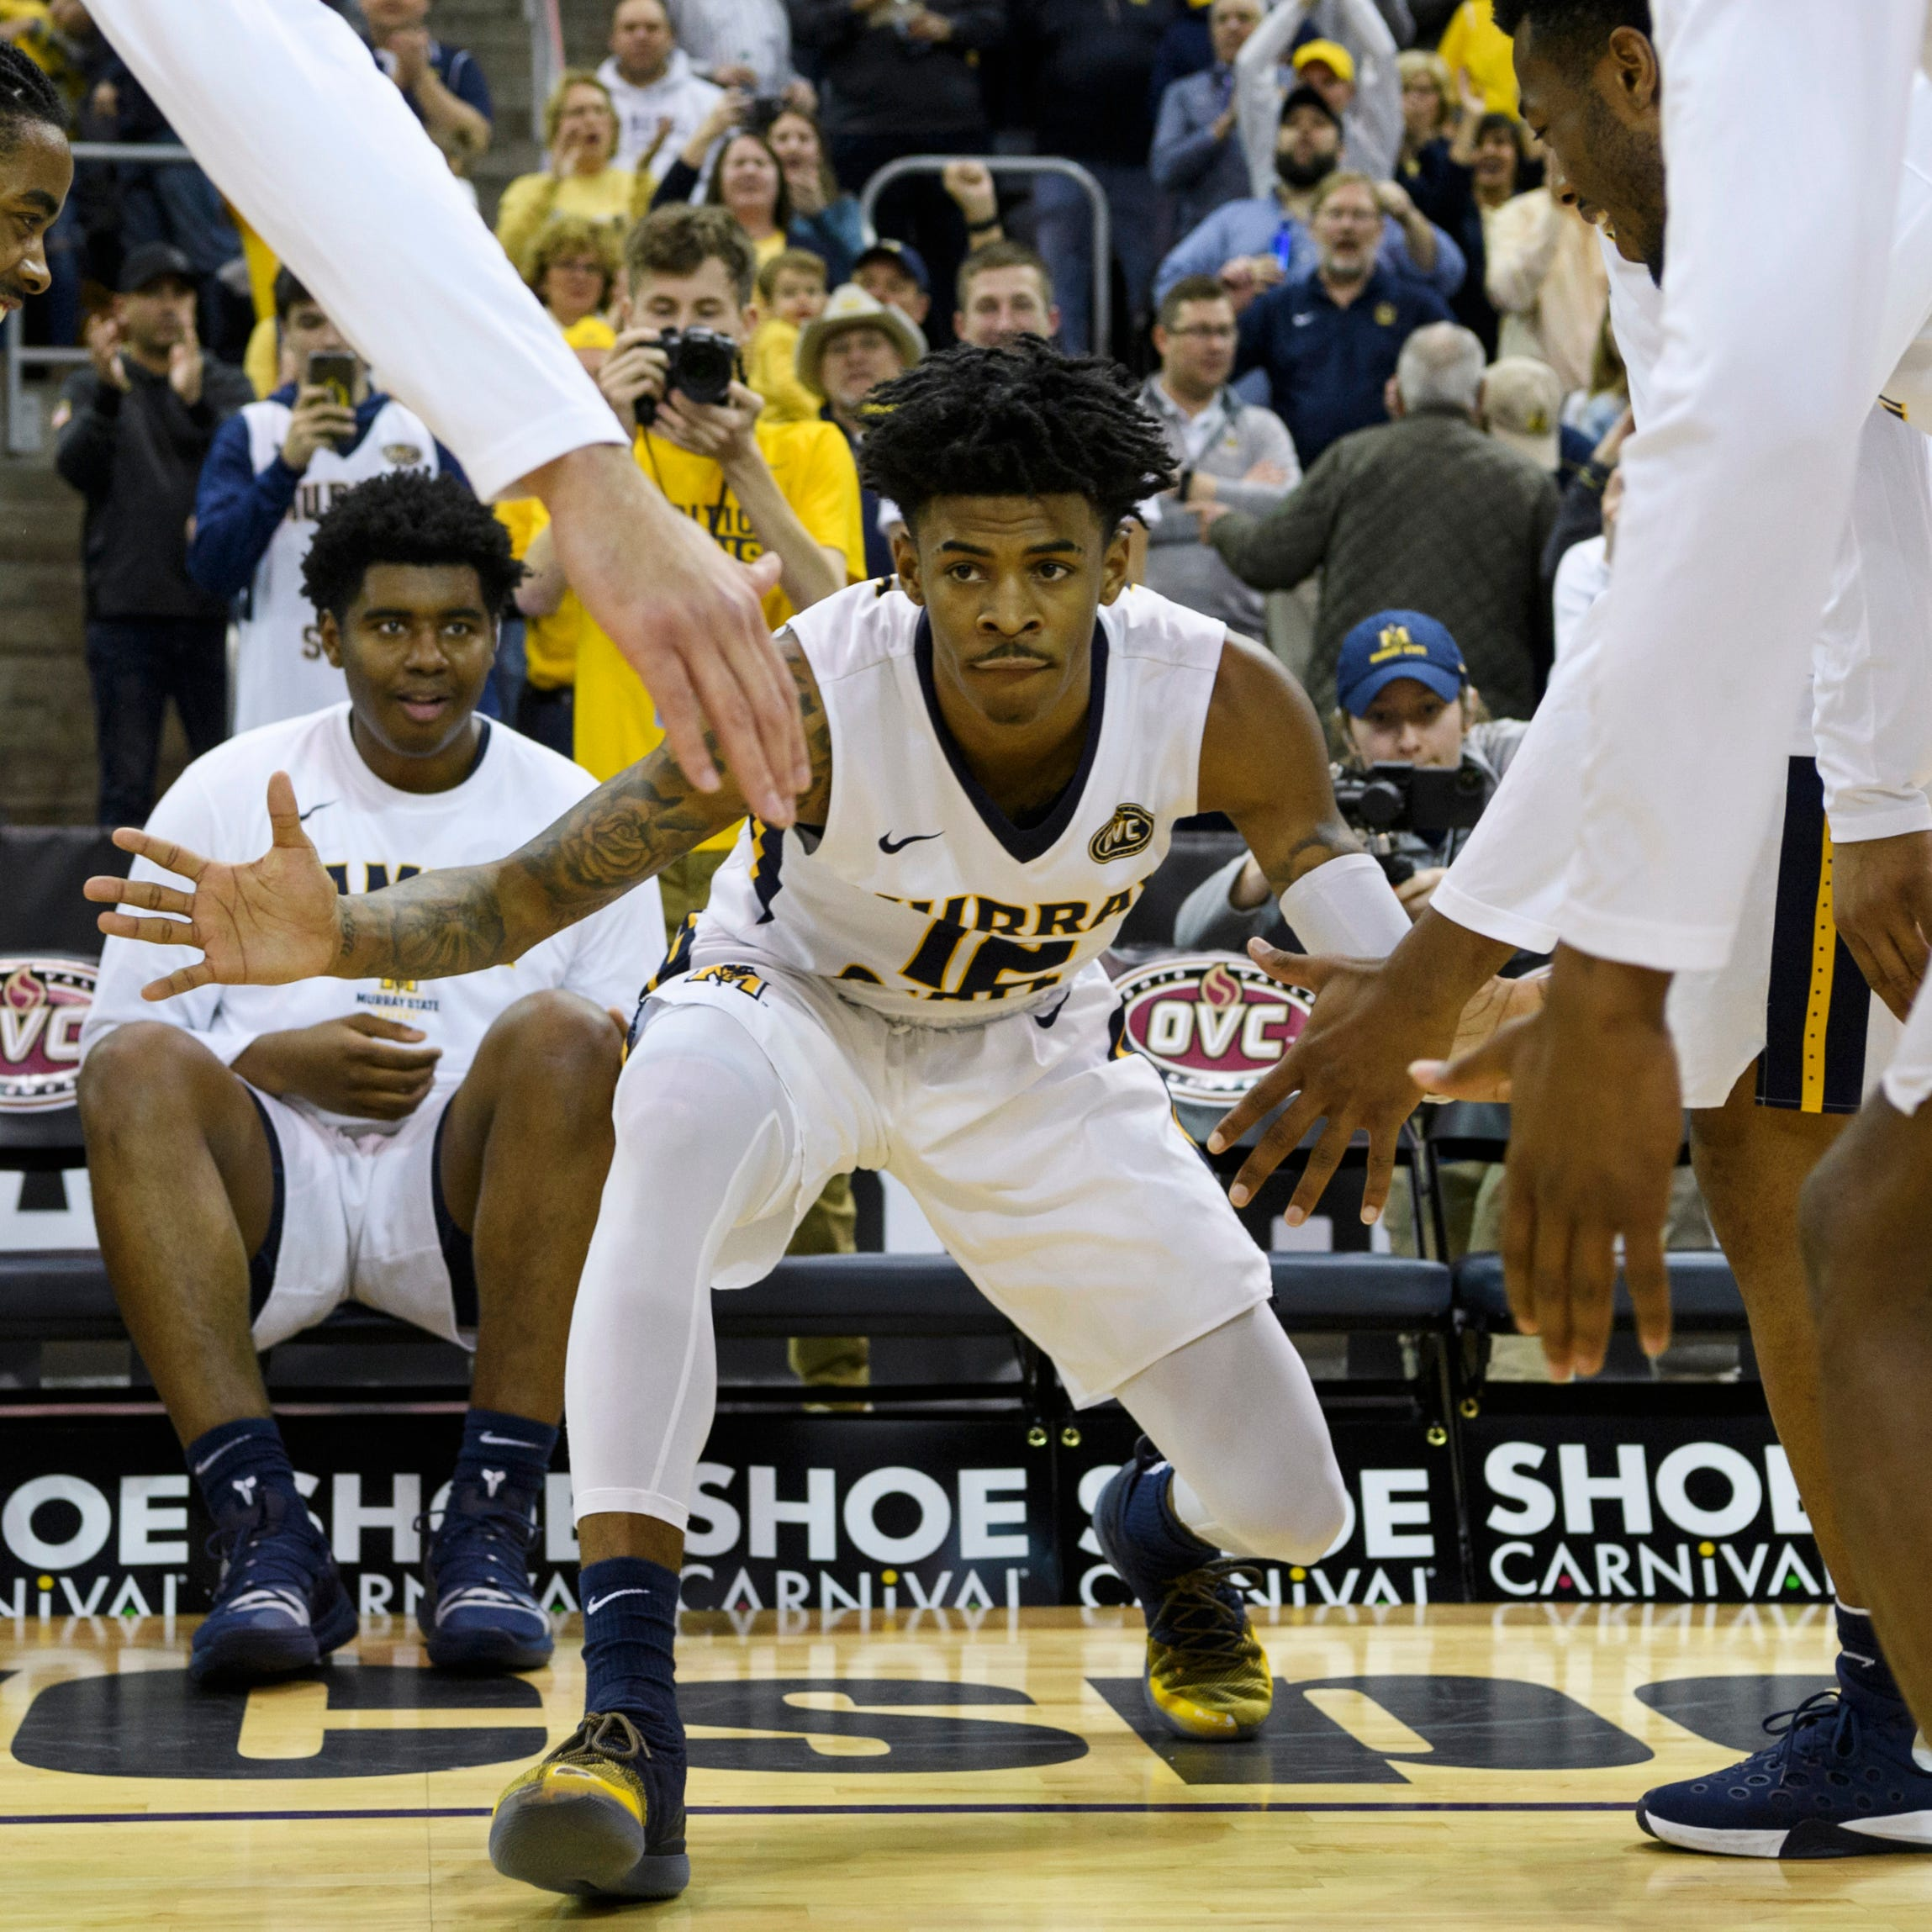 Murray State's Ja Morant is a future NBA lottery pick who presents a challenge for Marquette